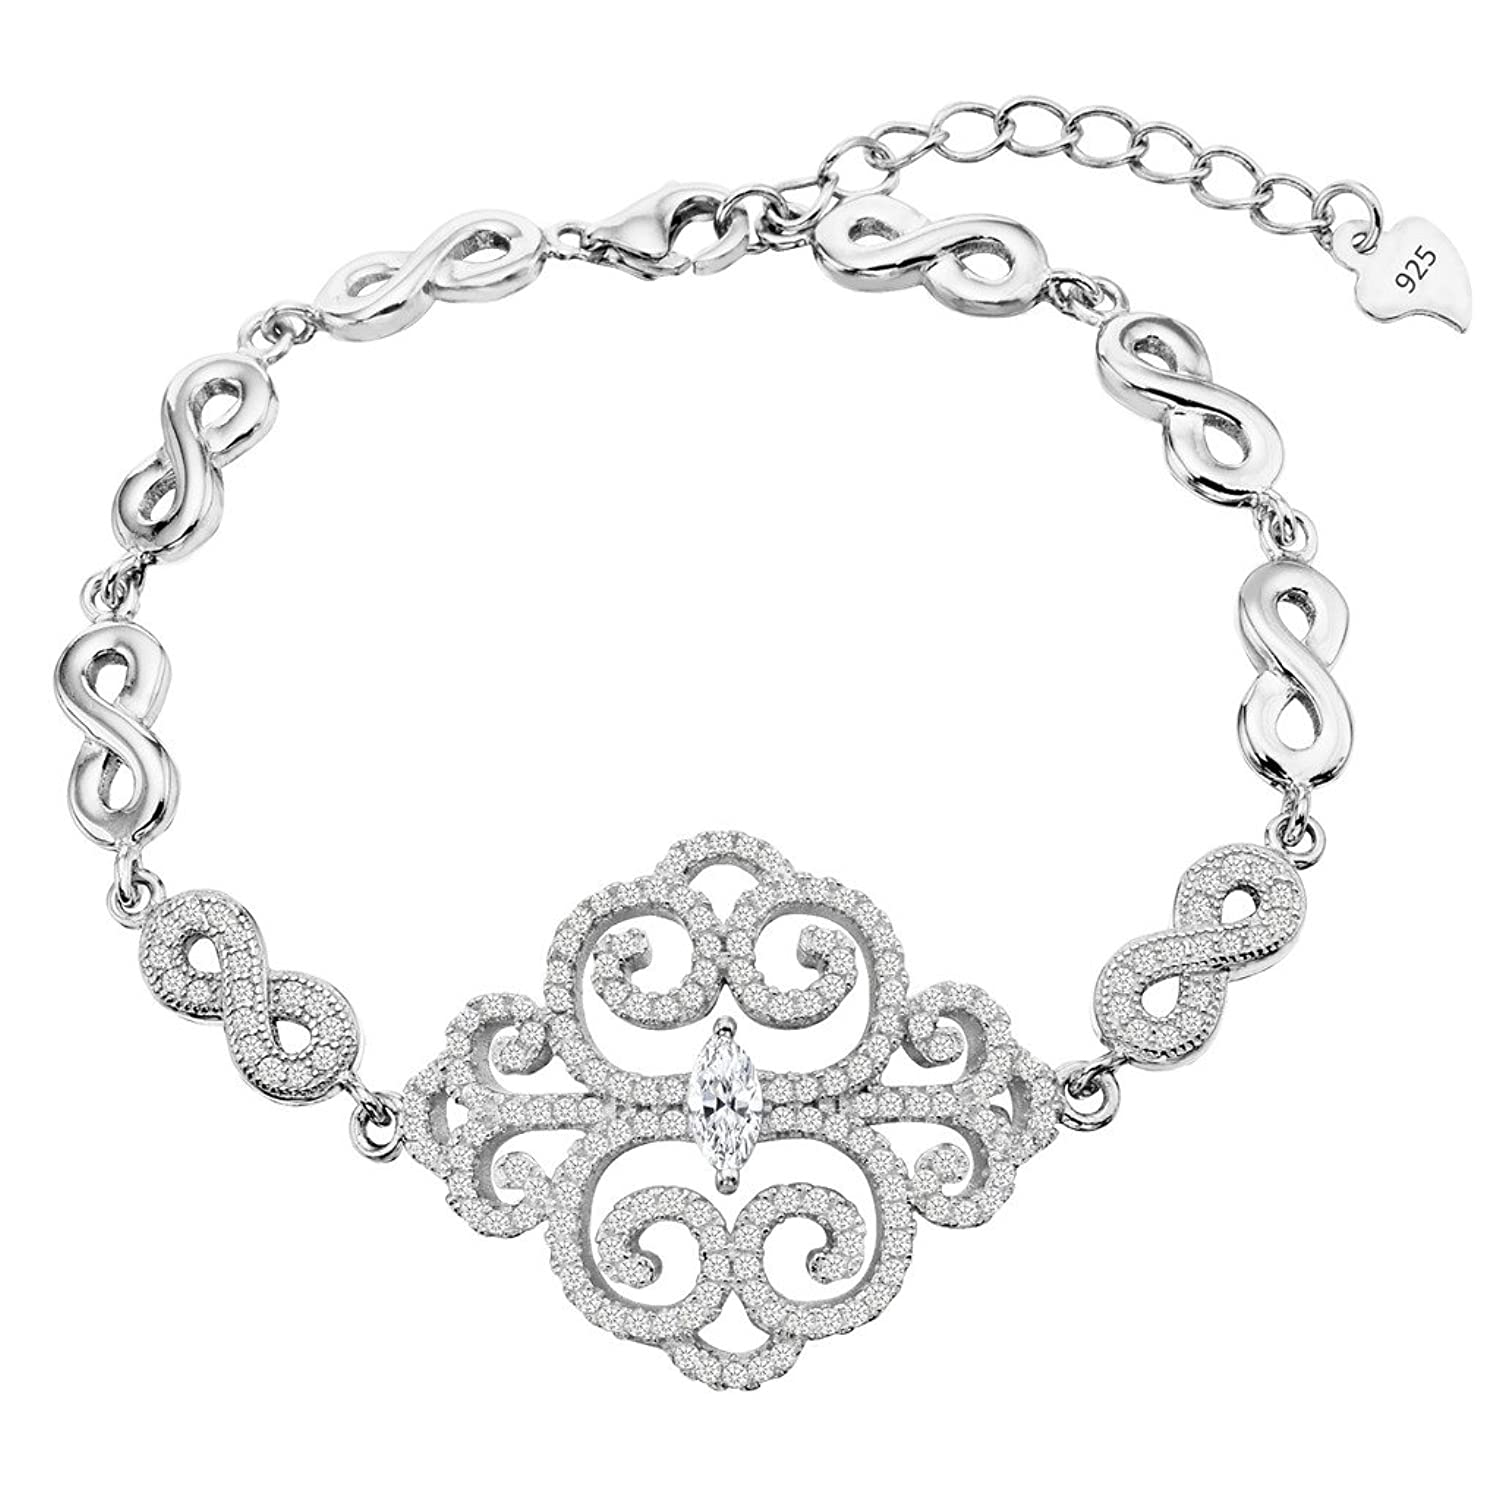 EVER FAITH 925 Sterling Silver Pave CZ Art Deco Filigree Figure 8 Infinity Woman Link Bracelet Clear